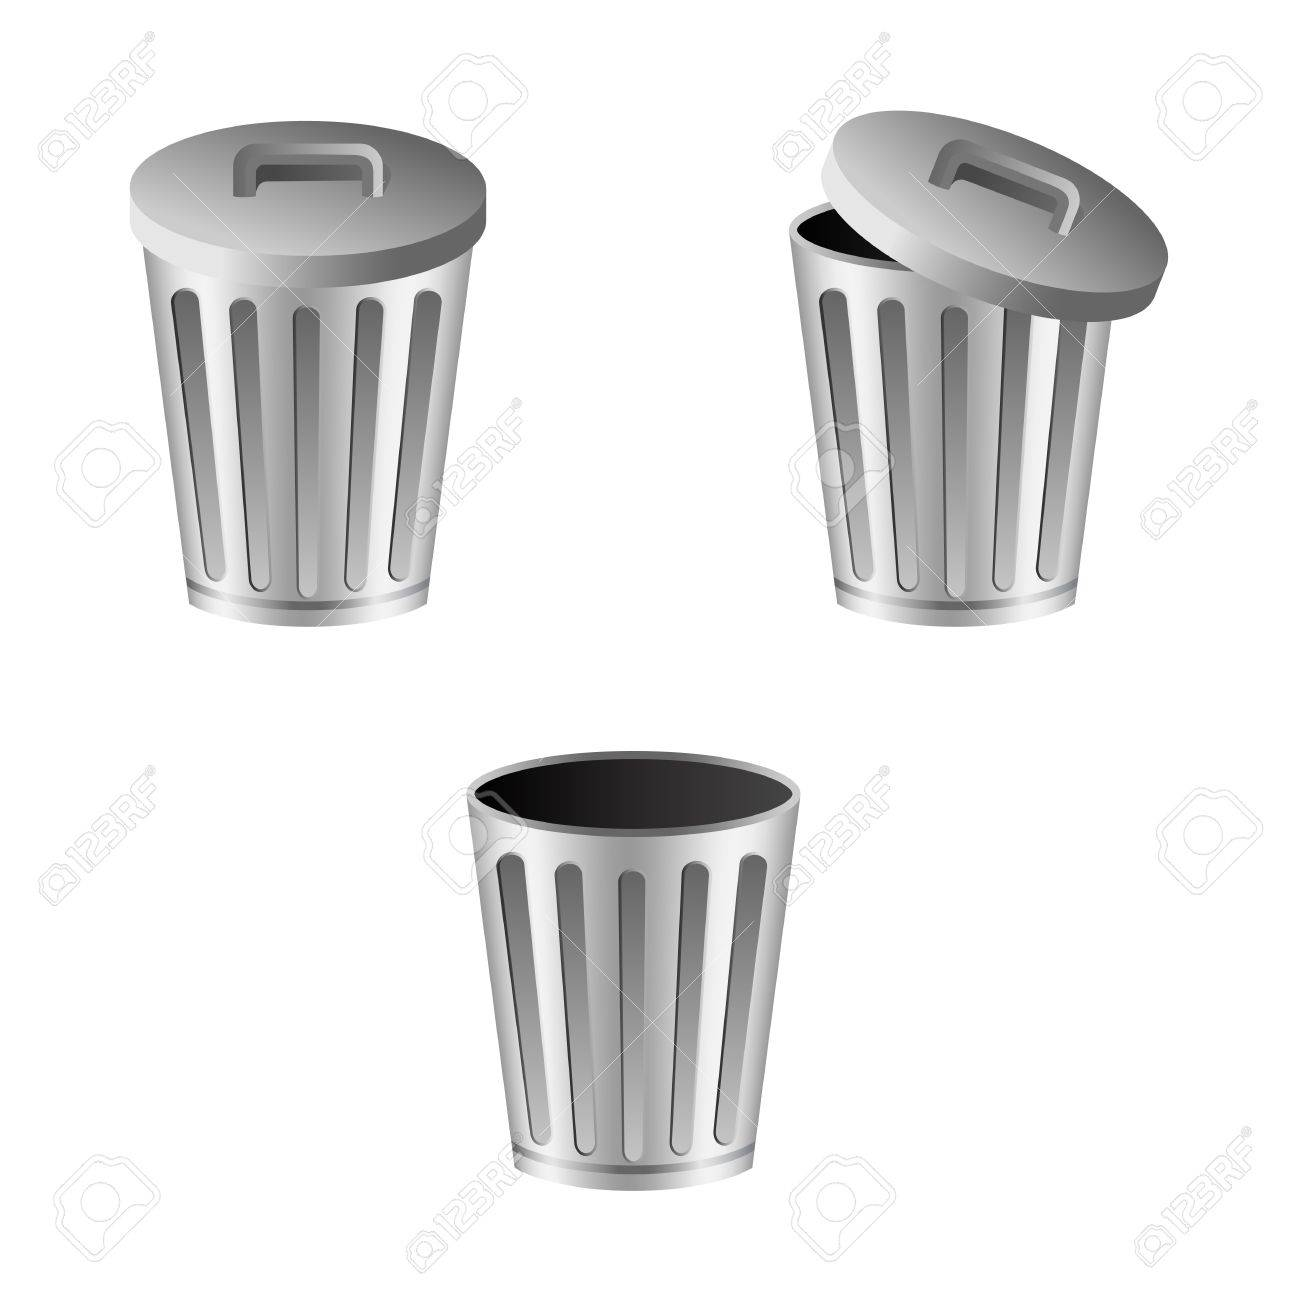 Trash can Stock Vector - 15977489